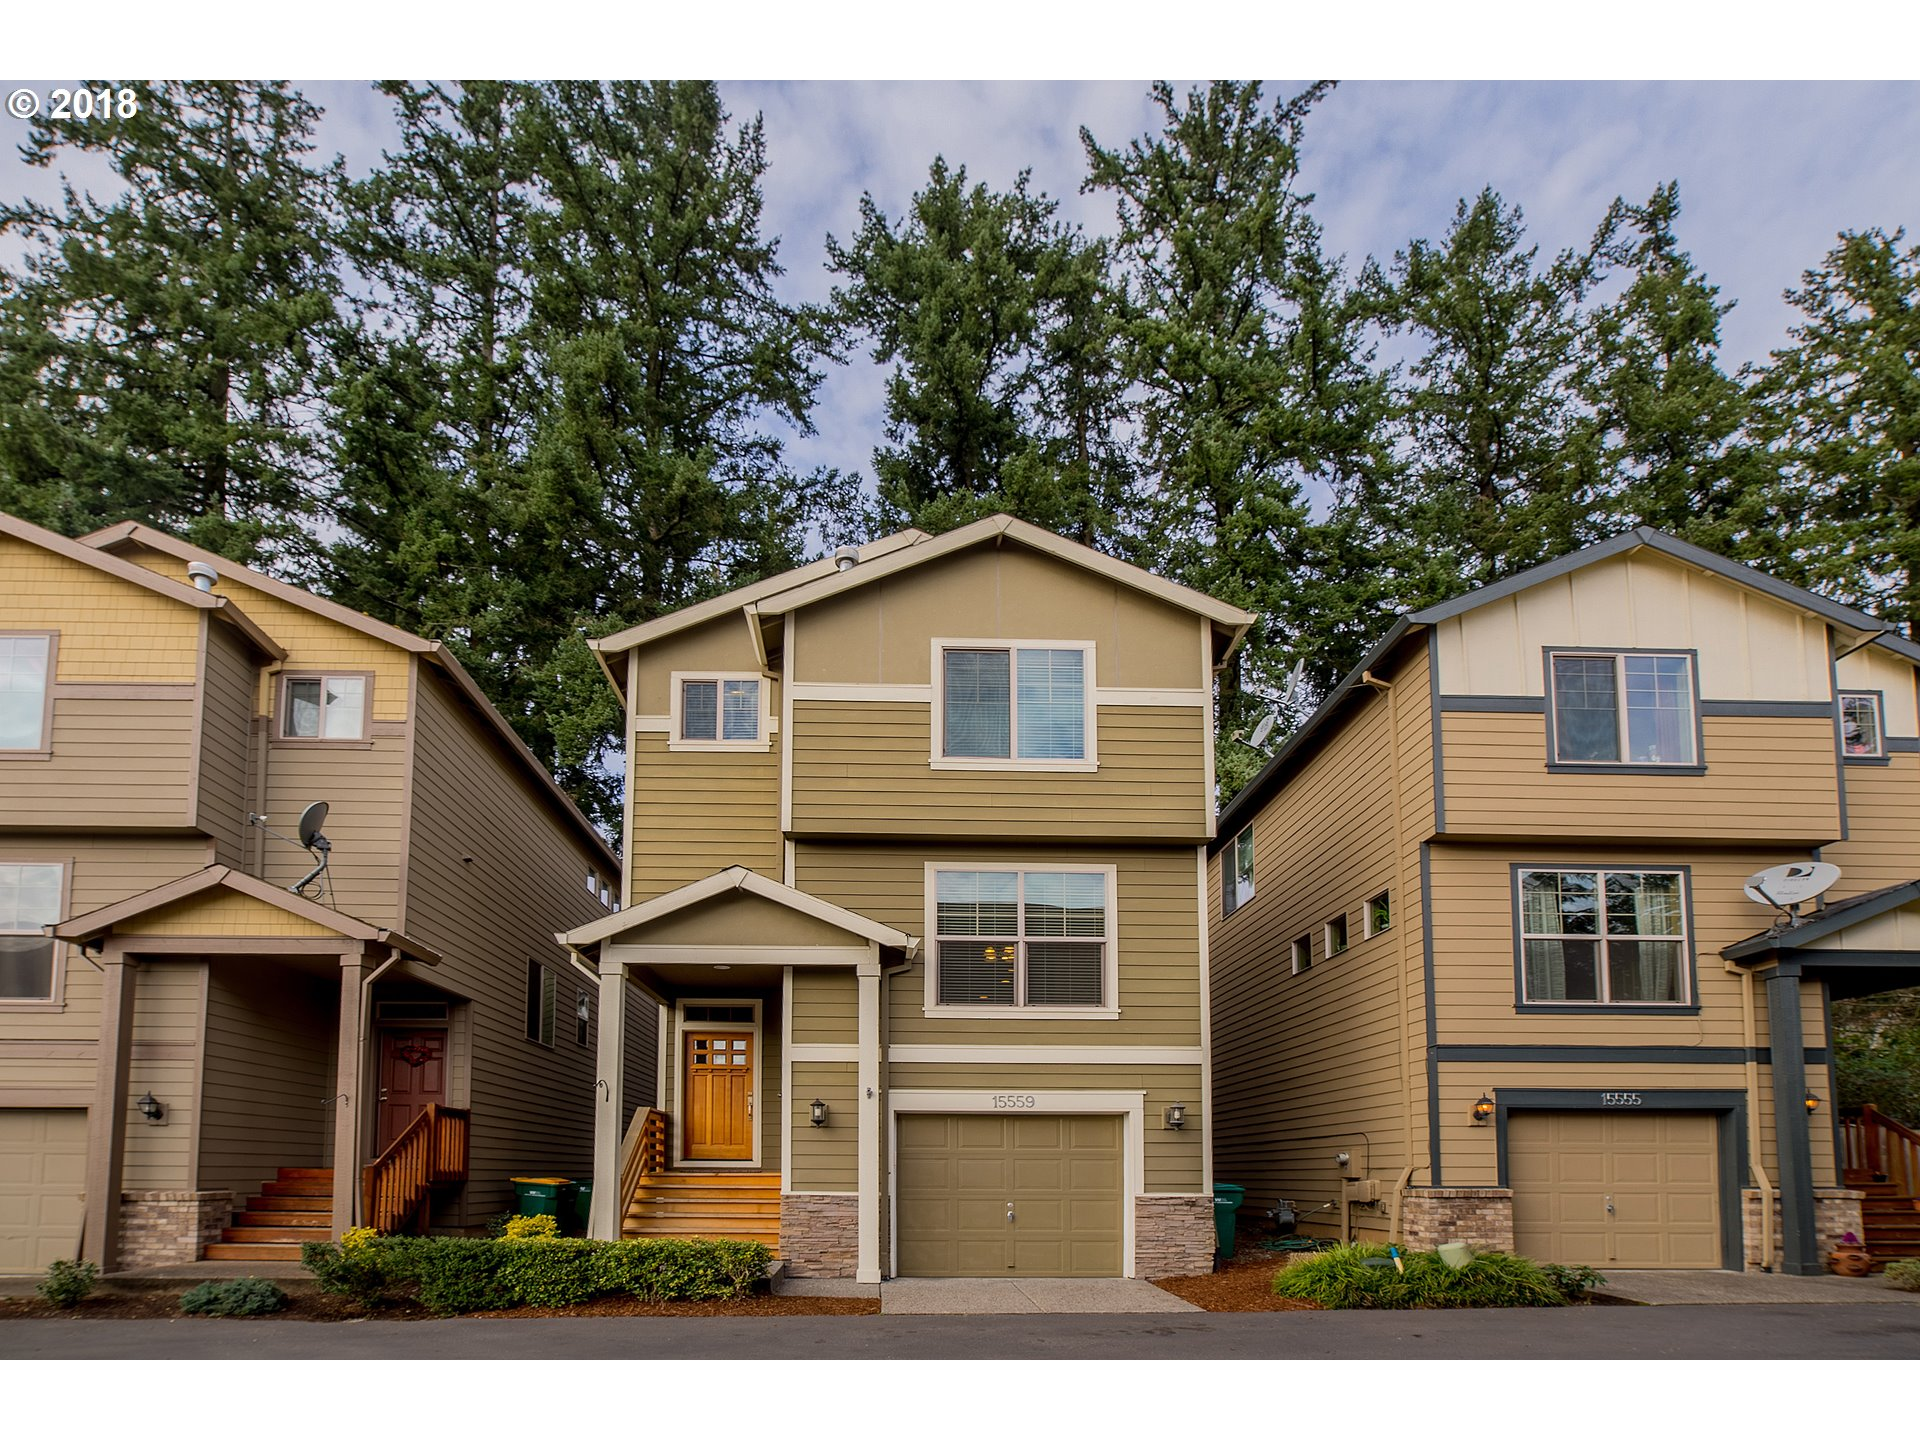 1772 sq. ft 3 bedrooms 2 bathrooms  House For Sale,Beaverton, OR